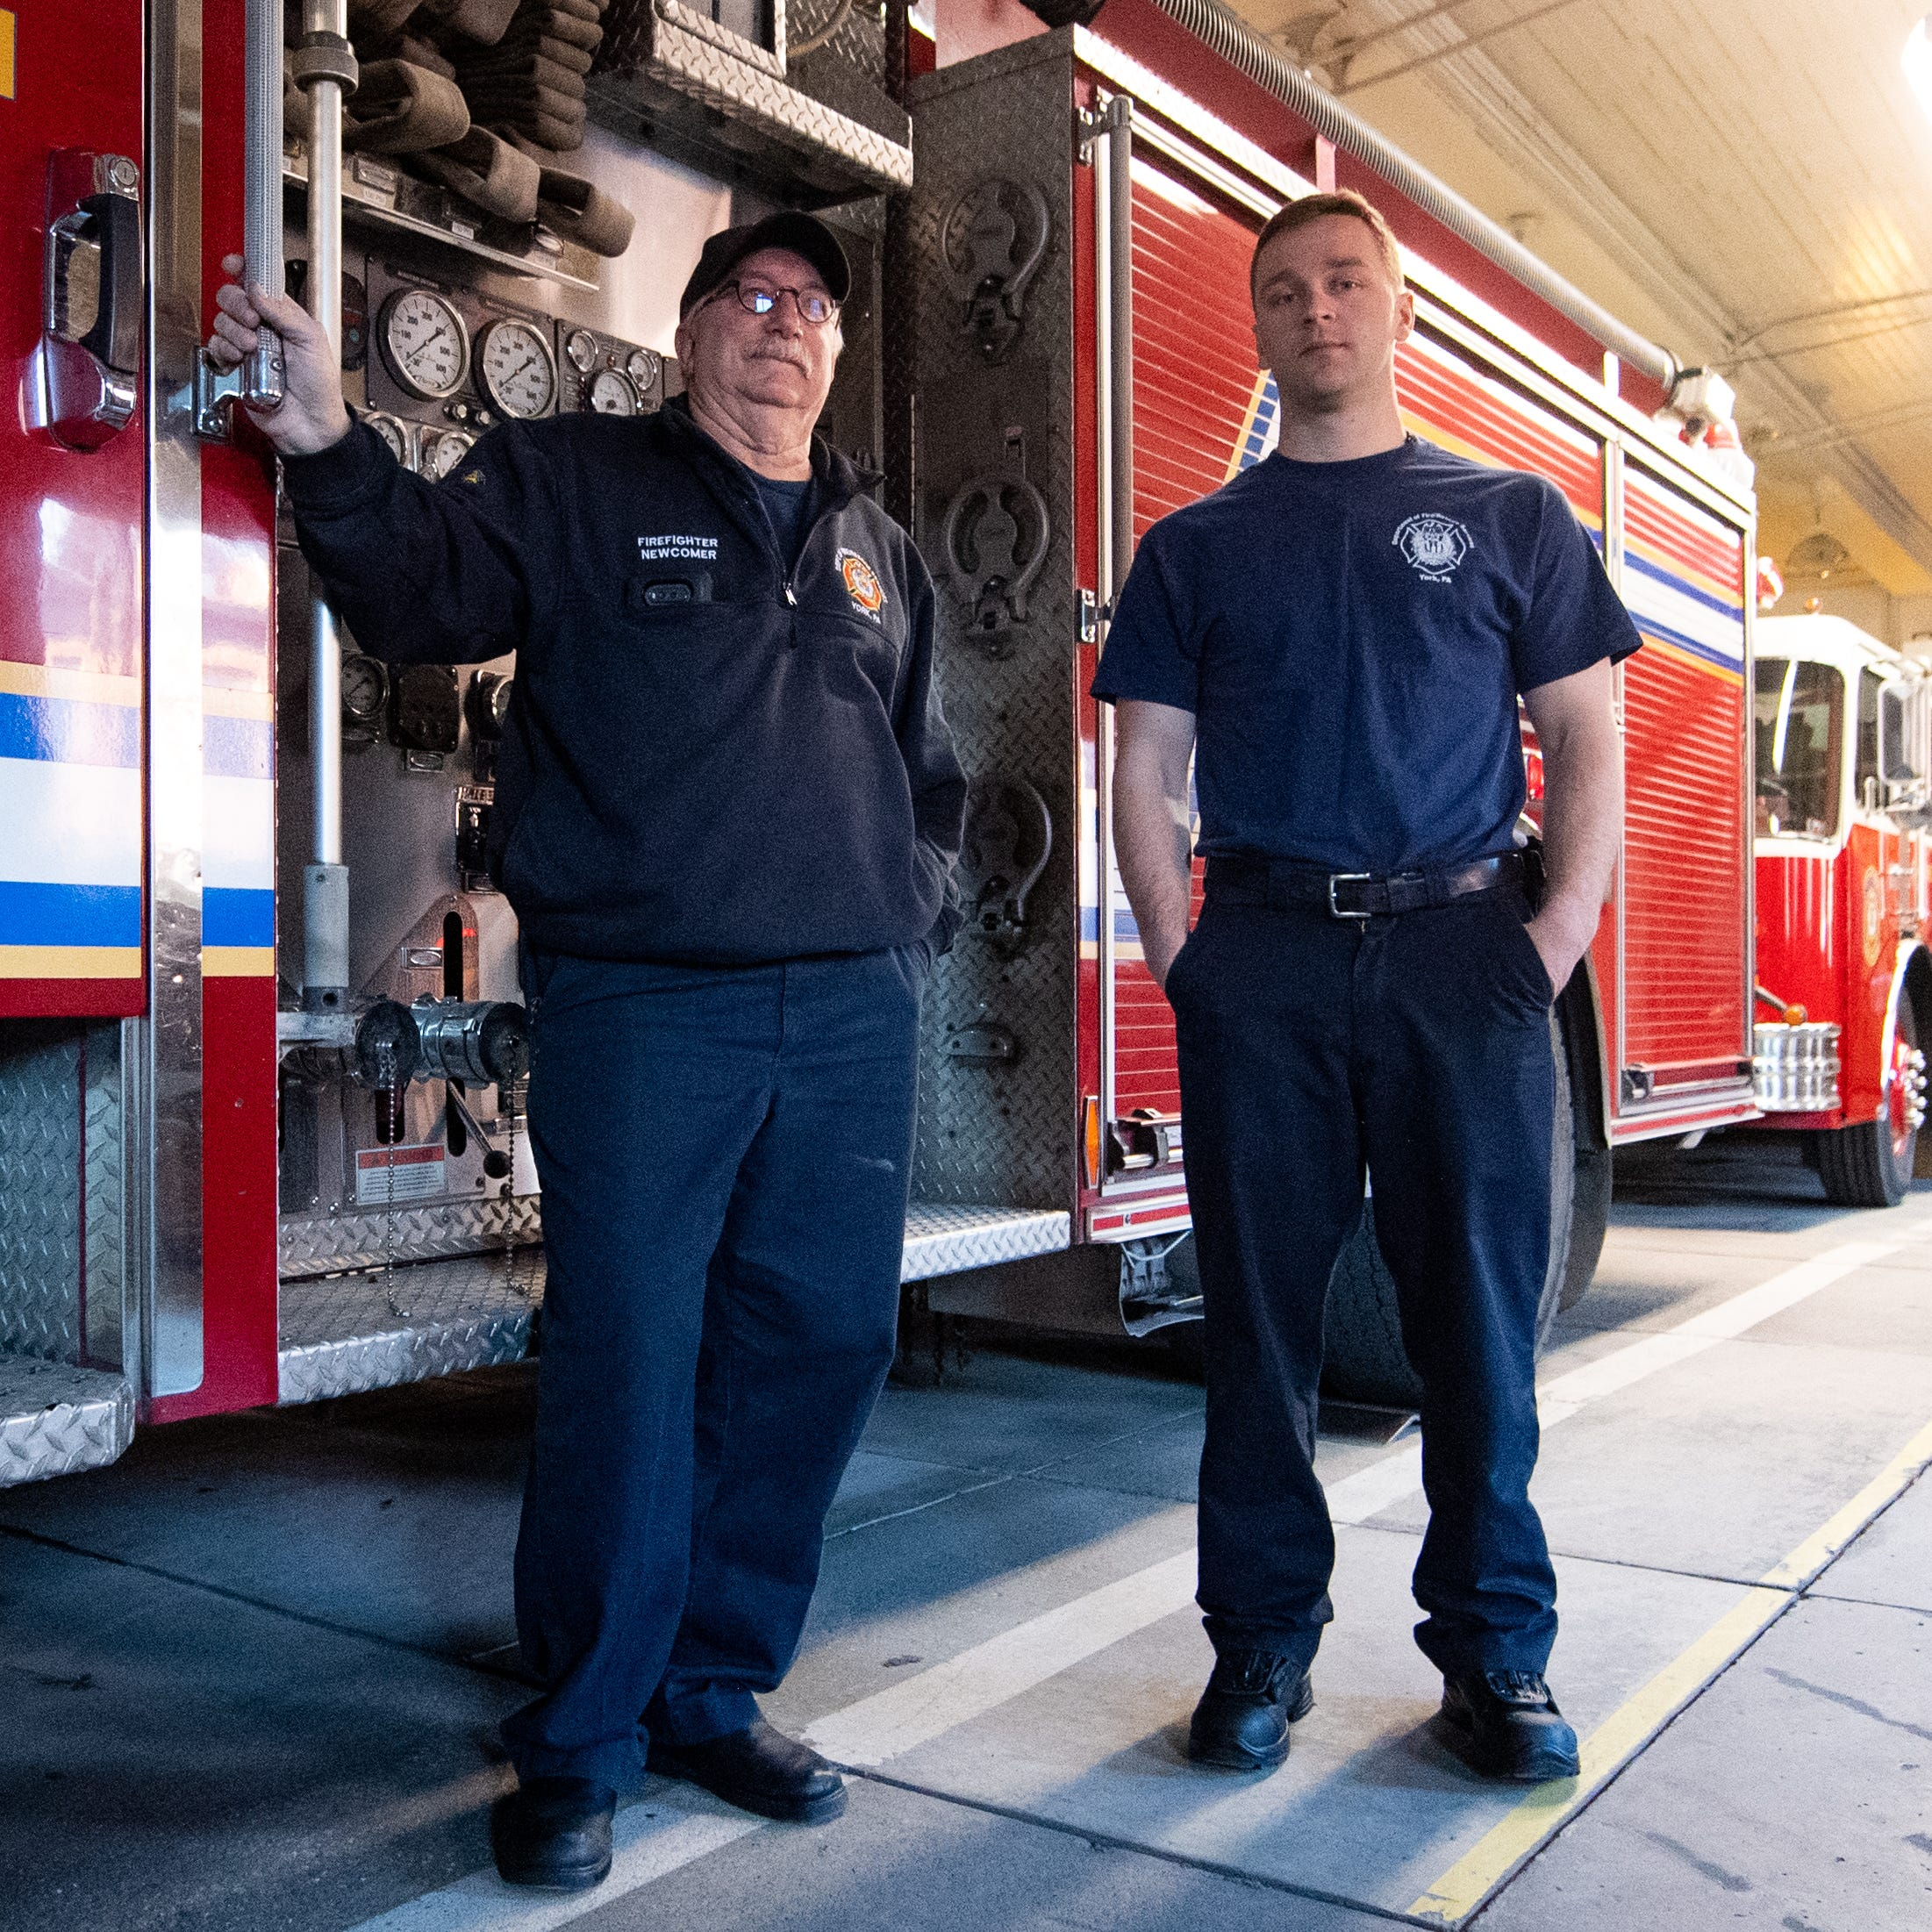 'They're still riding with us': Partners of fallen firefighters keep their memory alive